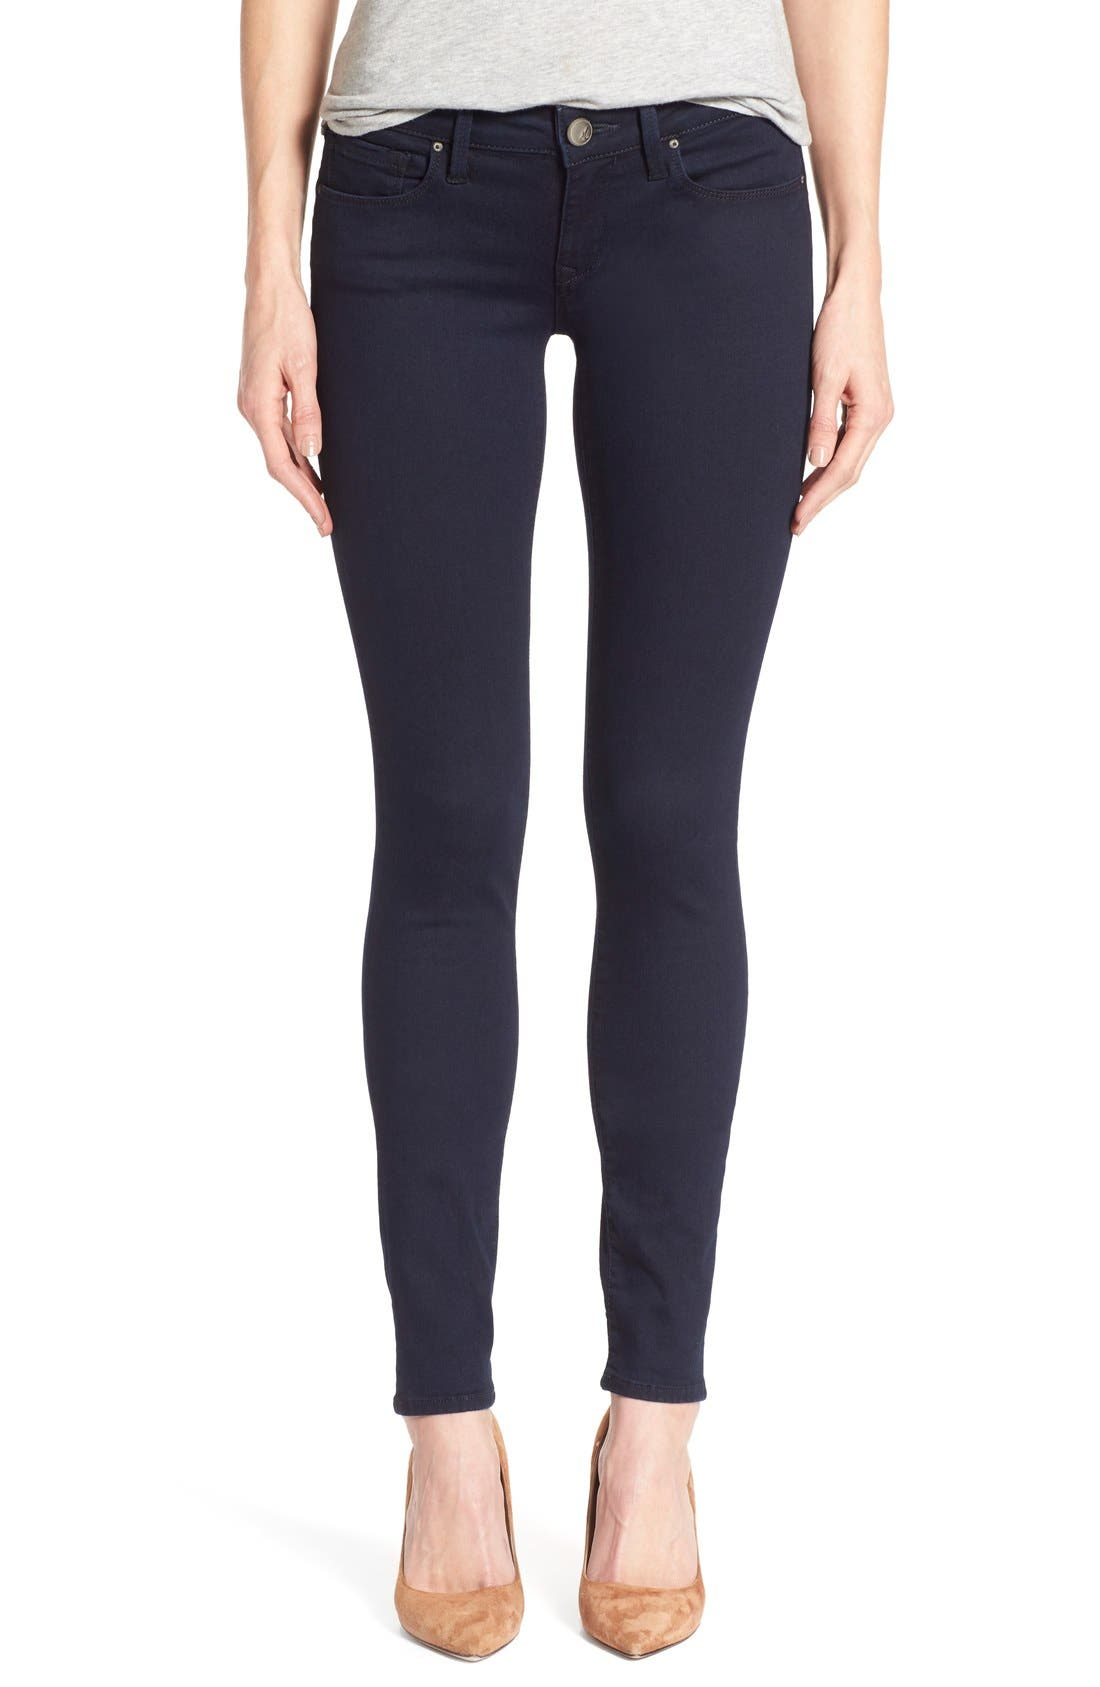 Alternate Image 1 Selected - Mavi Jeans 'Serena' Stretch Skinny Jeans (Dark Shanti) (Regular & Petite)